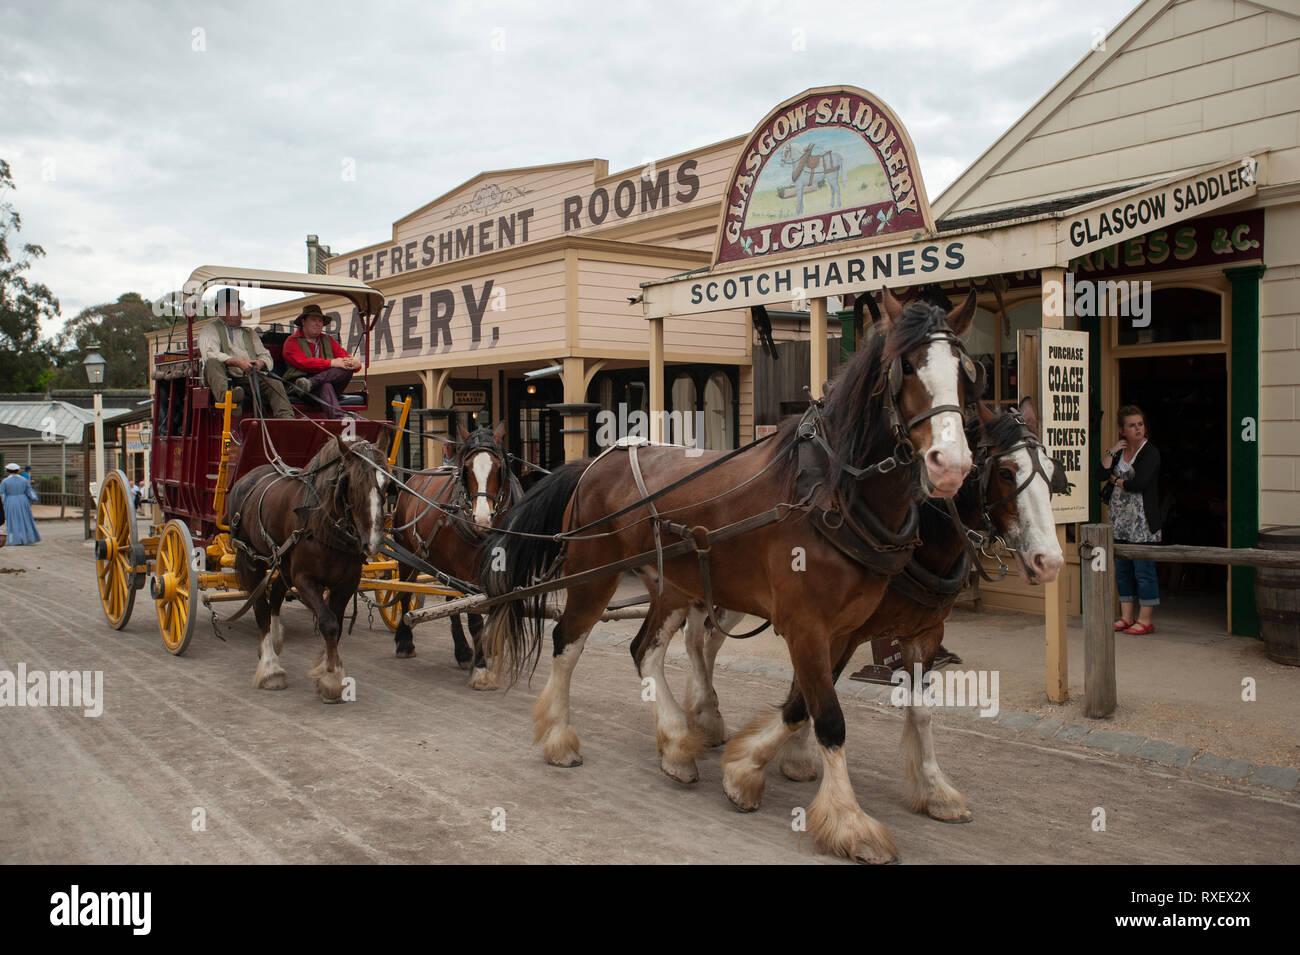 Sovereign Hill open air museum - Stock Image